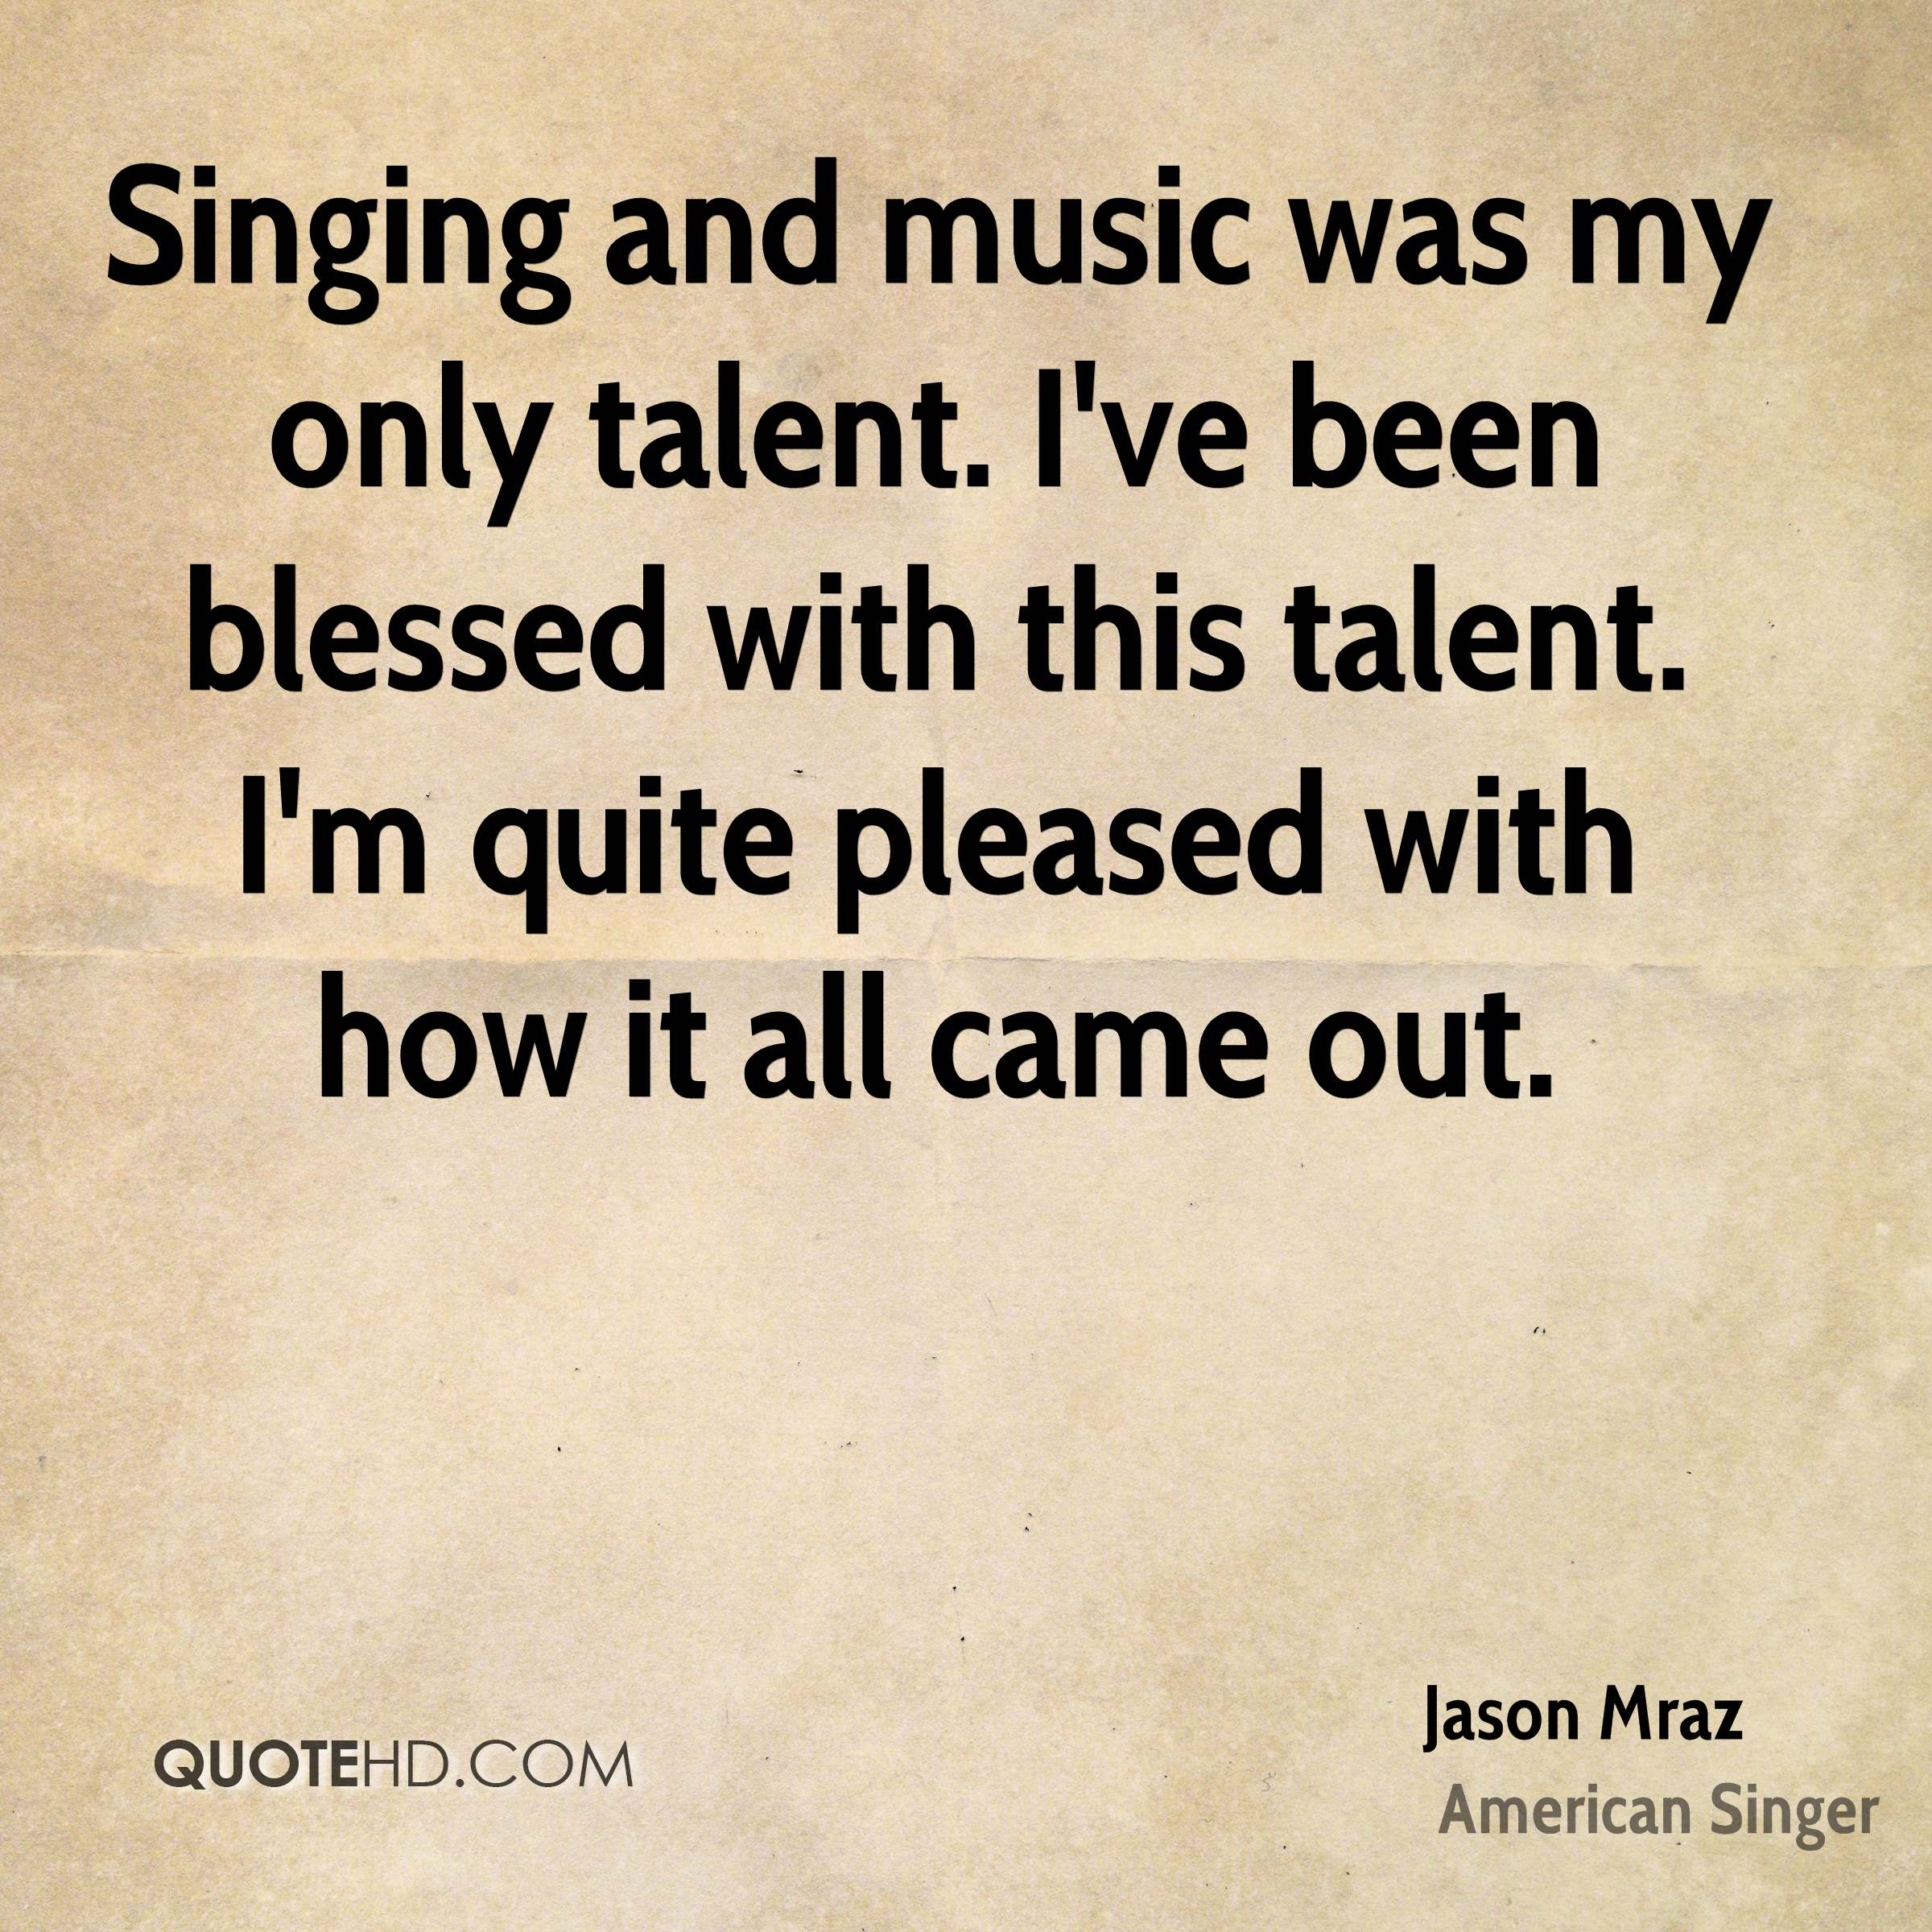 Singing and music was my only talent. I've been blessed with this talent. I'm quite pleased with how it all came out.